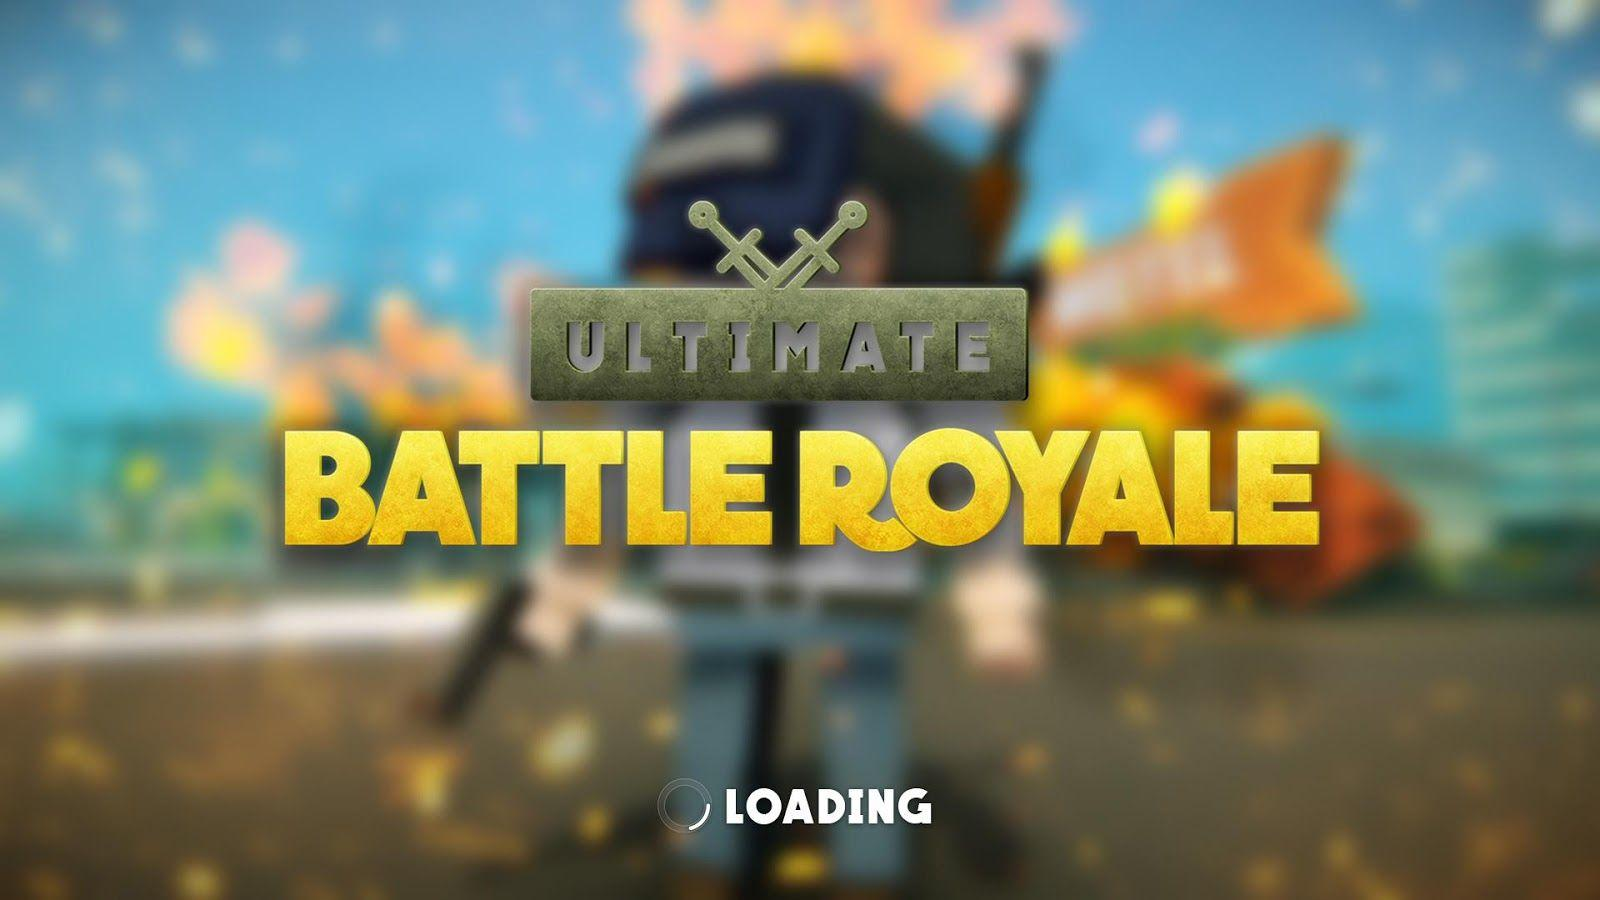 Ultimate Royal Battlegrounds – Grand PvP Arena - Android Apps on ...